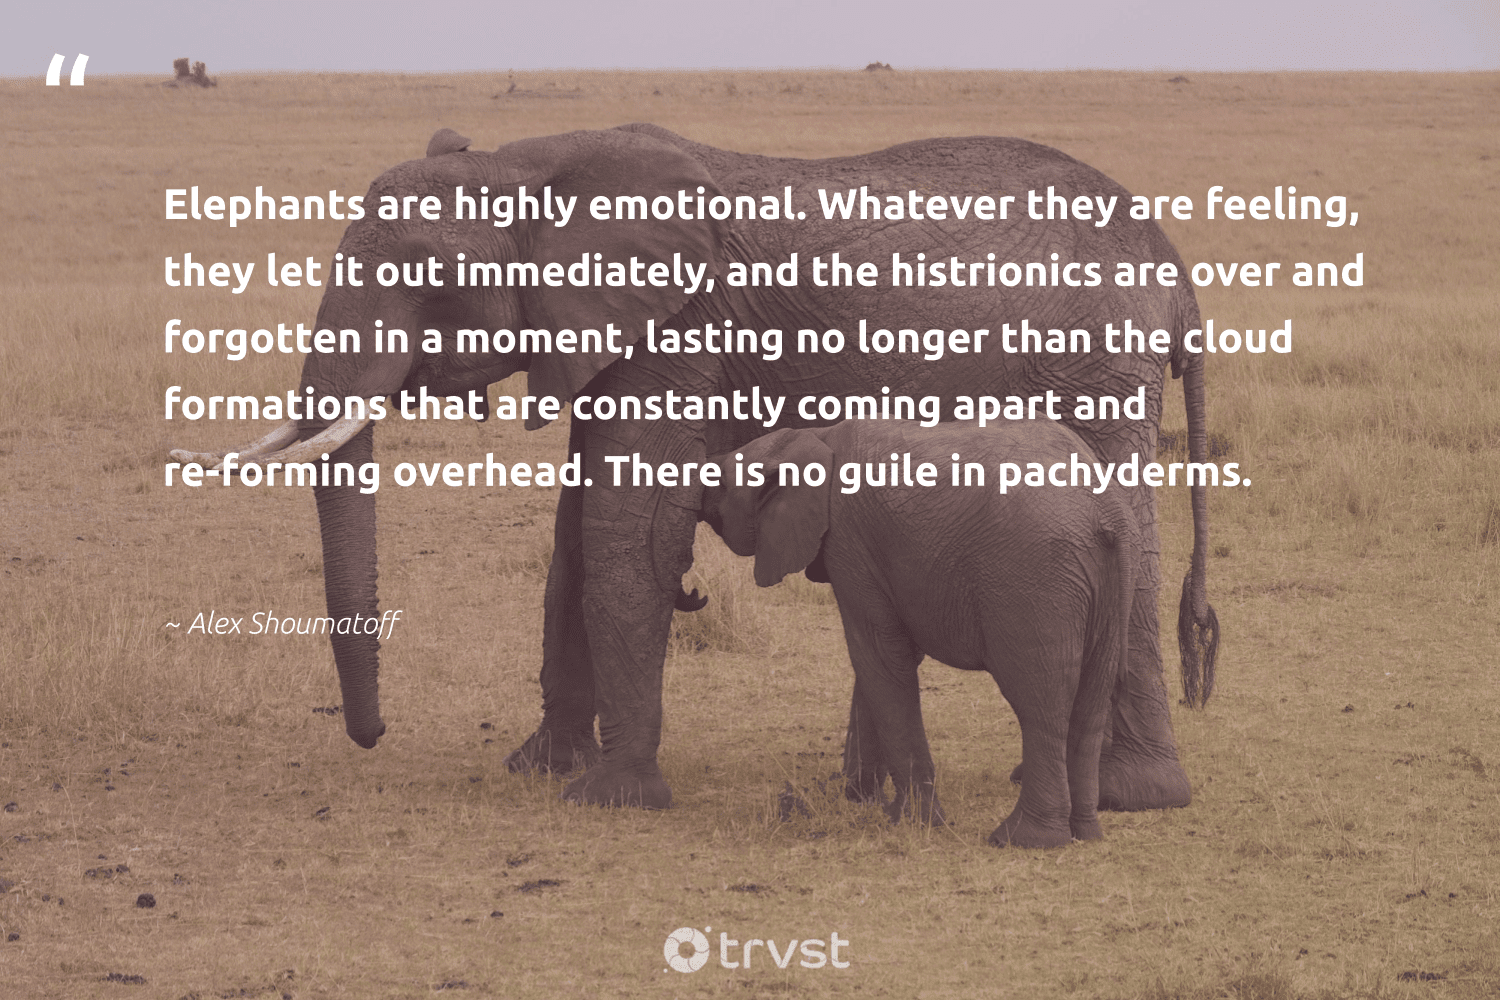 """""""Elephants are highly emotional. Whatever they are feeling, they let it out immediately, and the histrionics are over and forgotten in a moment, lasting no longer than the cloud formations that are constantly coming apart and re-forming overhead. There is no guile in pachyderms.""""  - Alex Shoumatoff #trvst #quotes #elephants #endangered #planetearthfirst #naturelovers #bethechange #elephant #dotherightthing #animals #collectiveaction #wildanimals"""